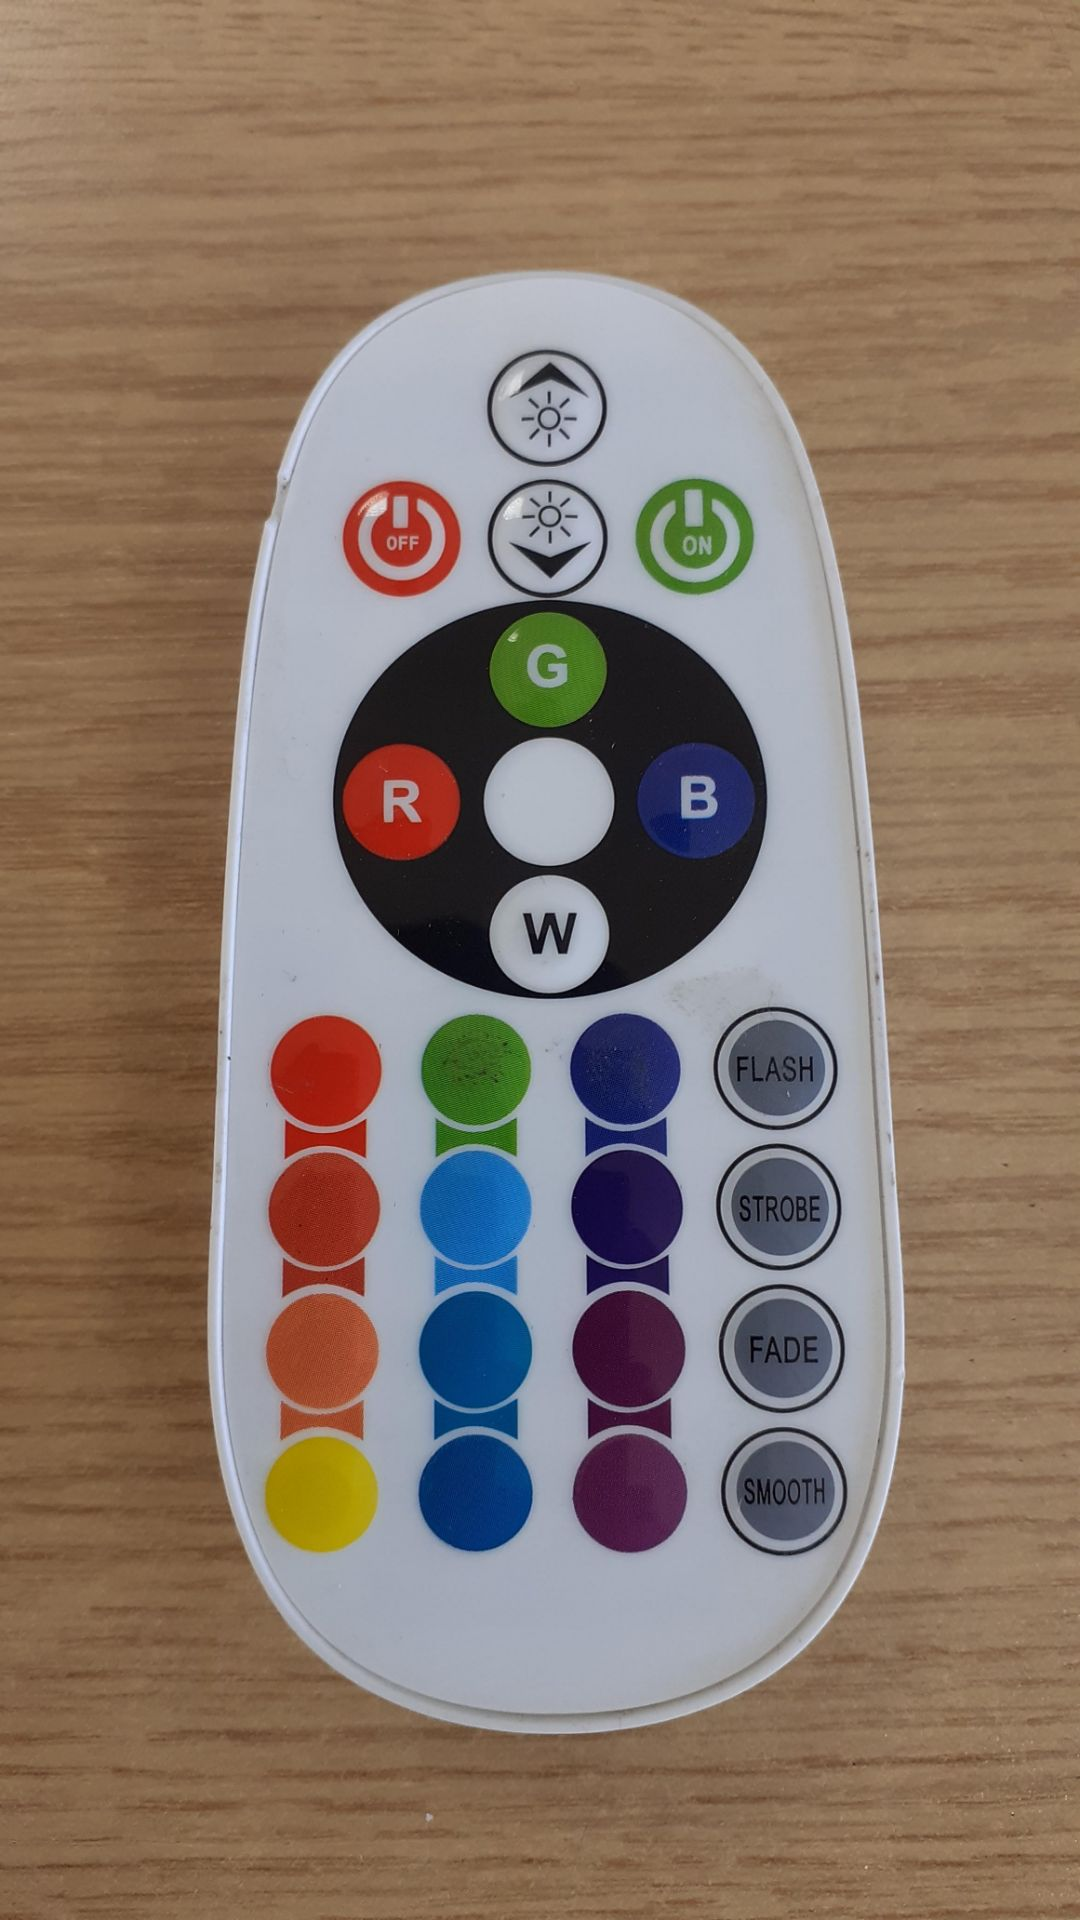 A Playlearn SLUF 70cm Light Up Cylinder with Power Supply and Remote Control (good condition, - Image 10 of 10